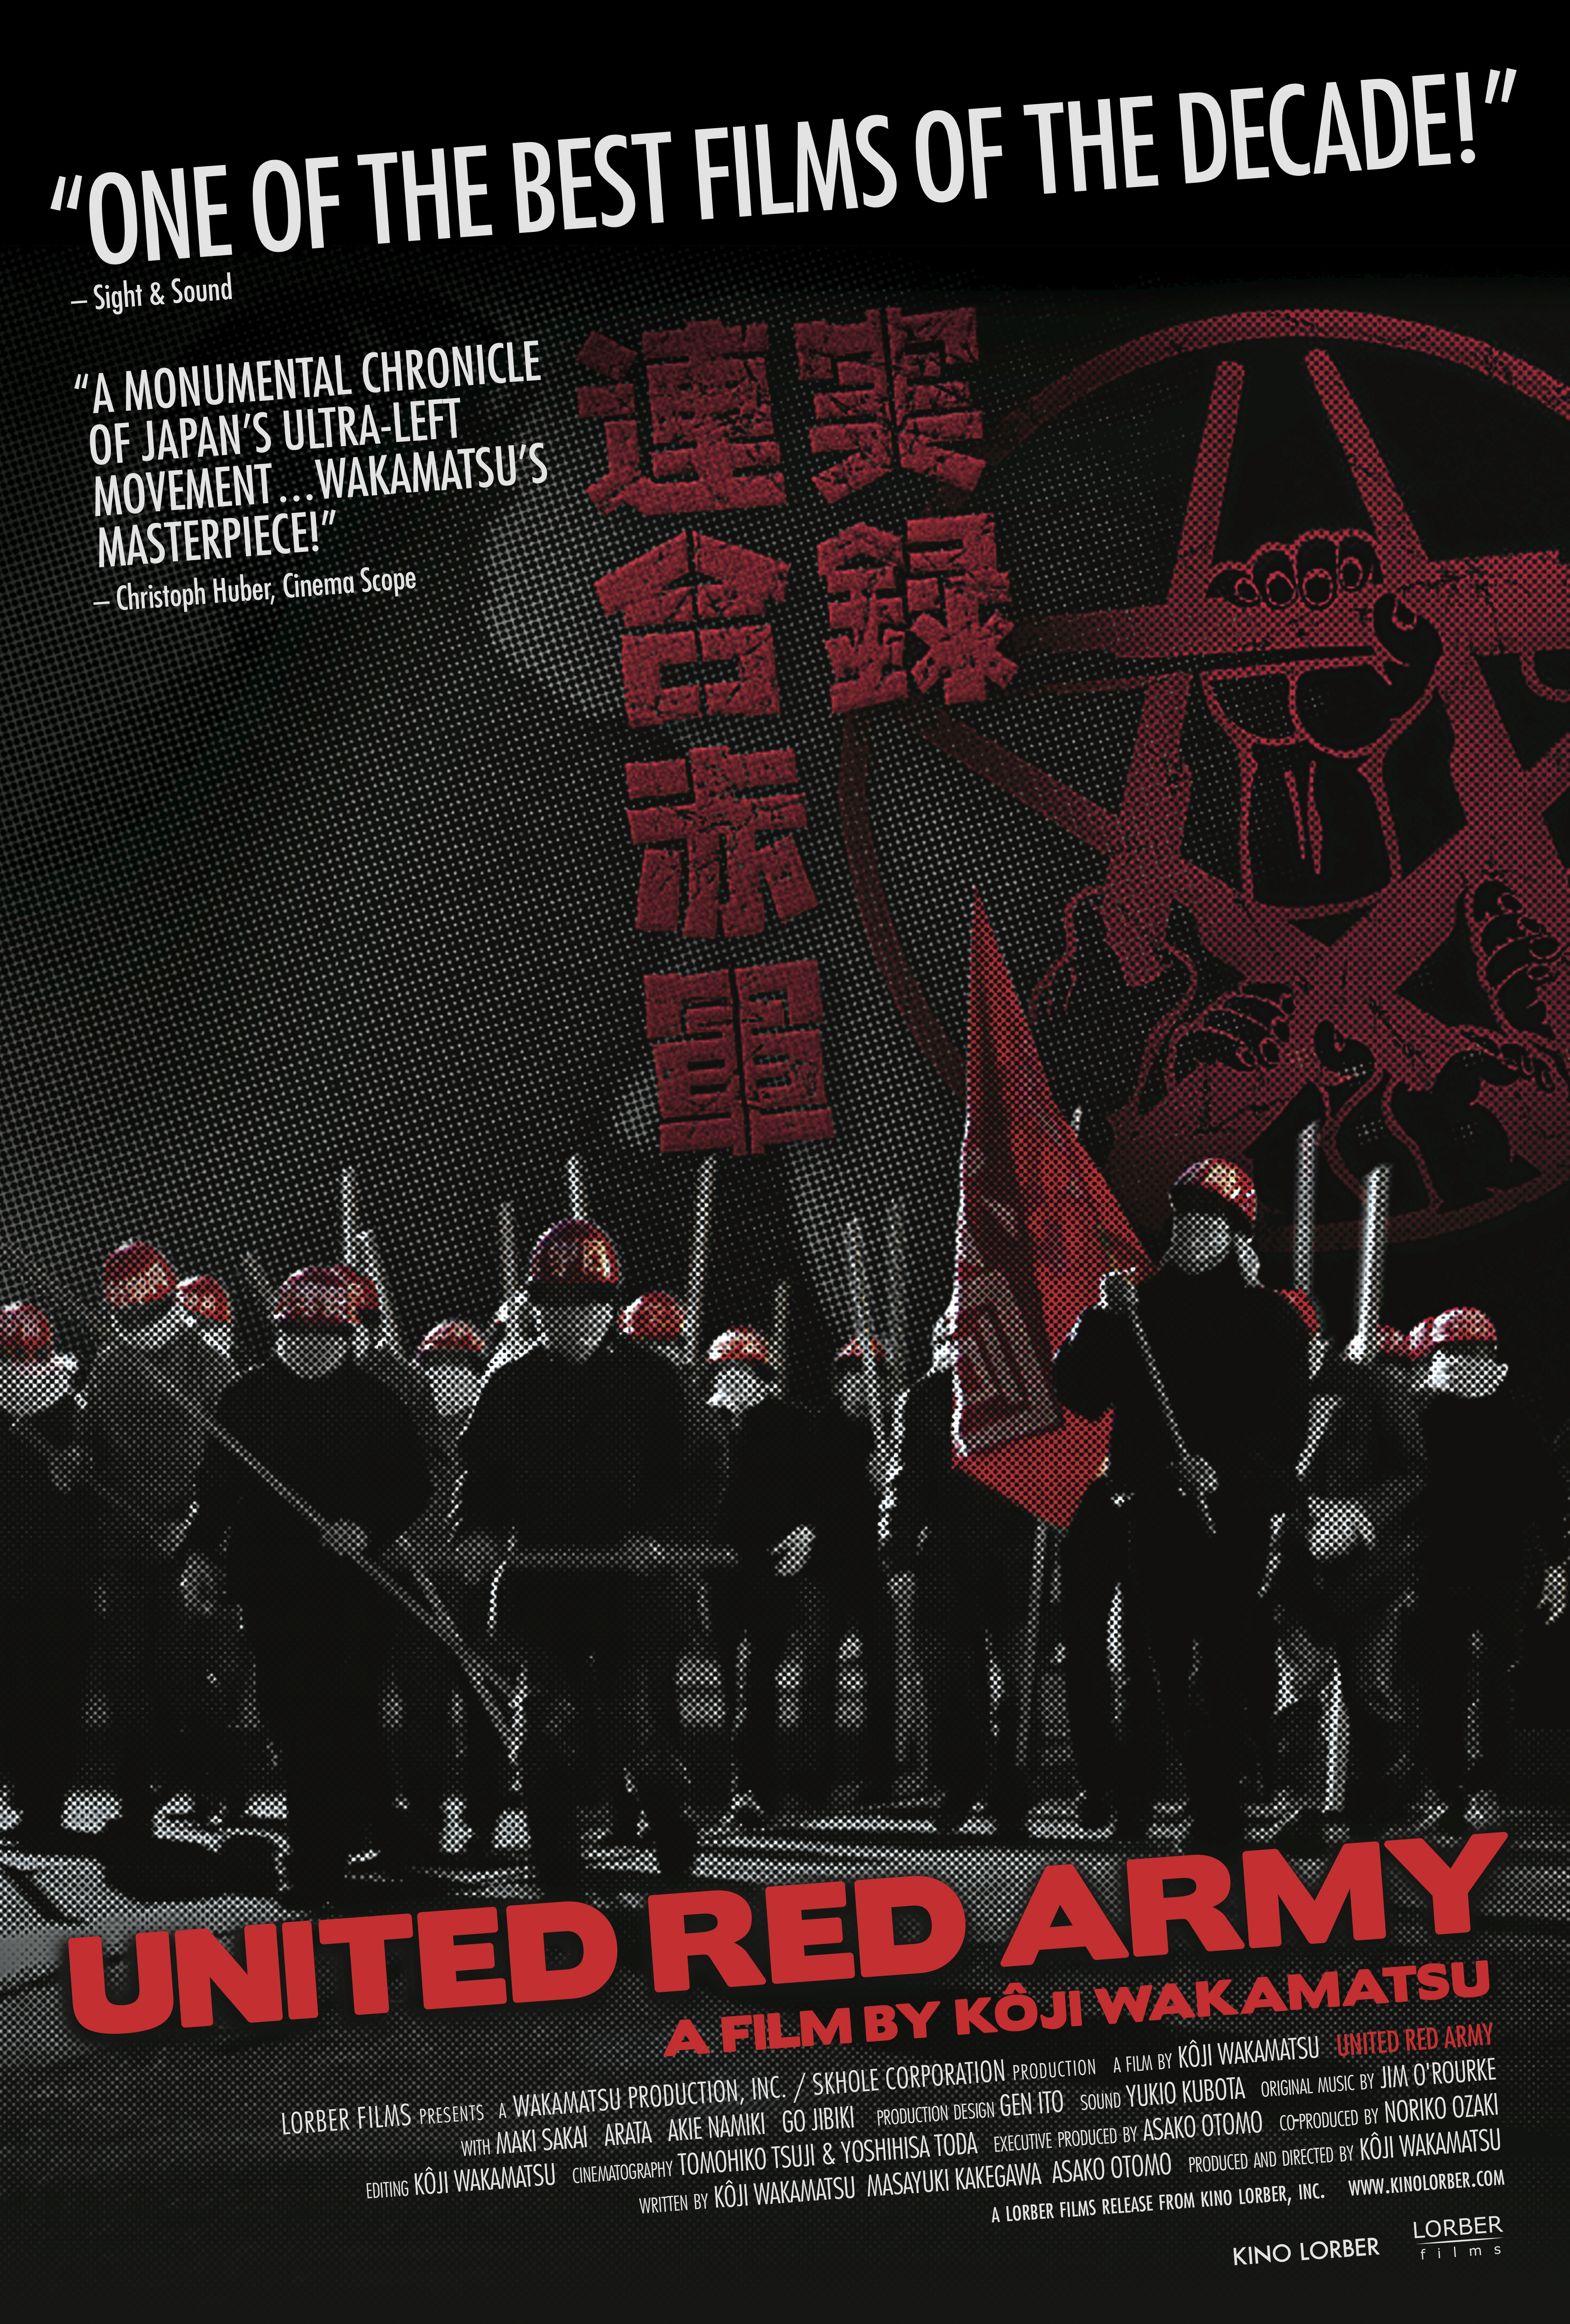 Red Army Film